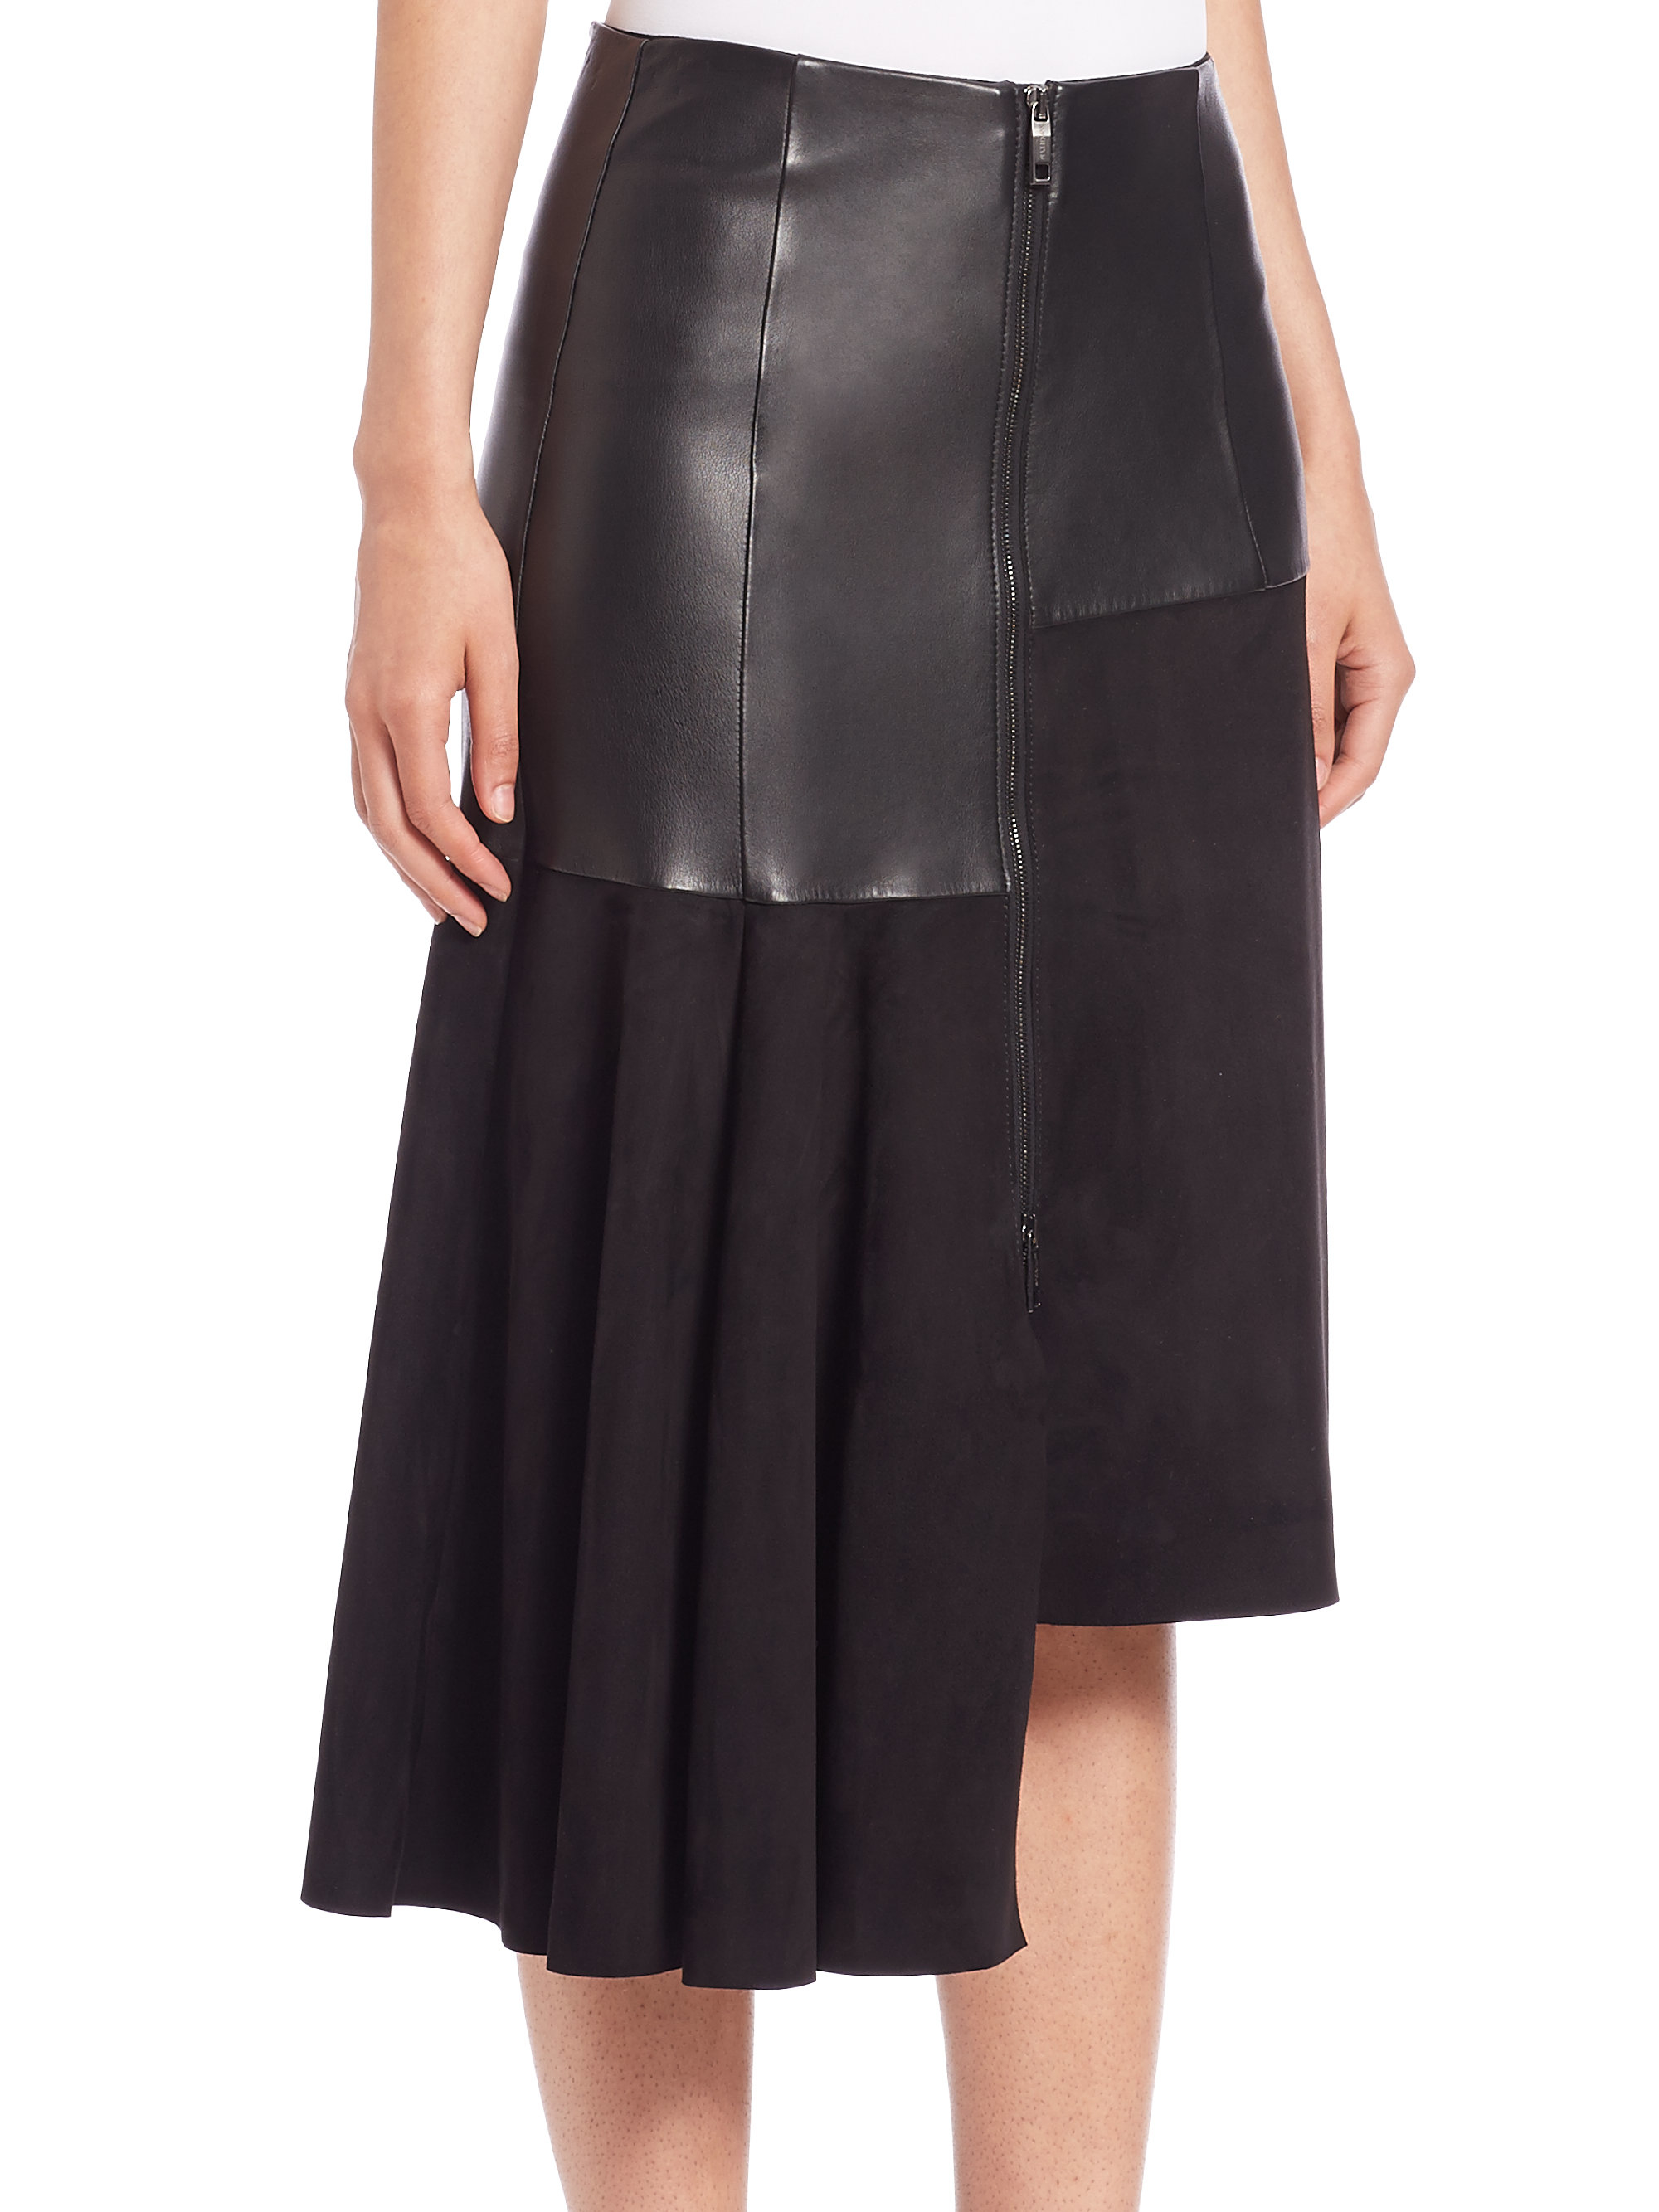 Sportmax Kim Leather & Suede Asymmetrical Skirt in Black | Lyst